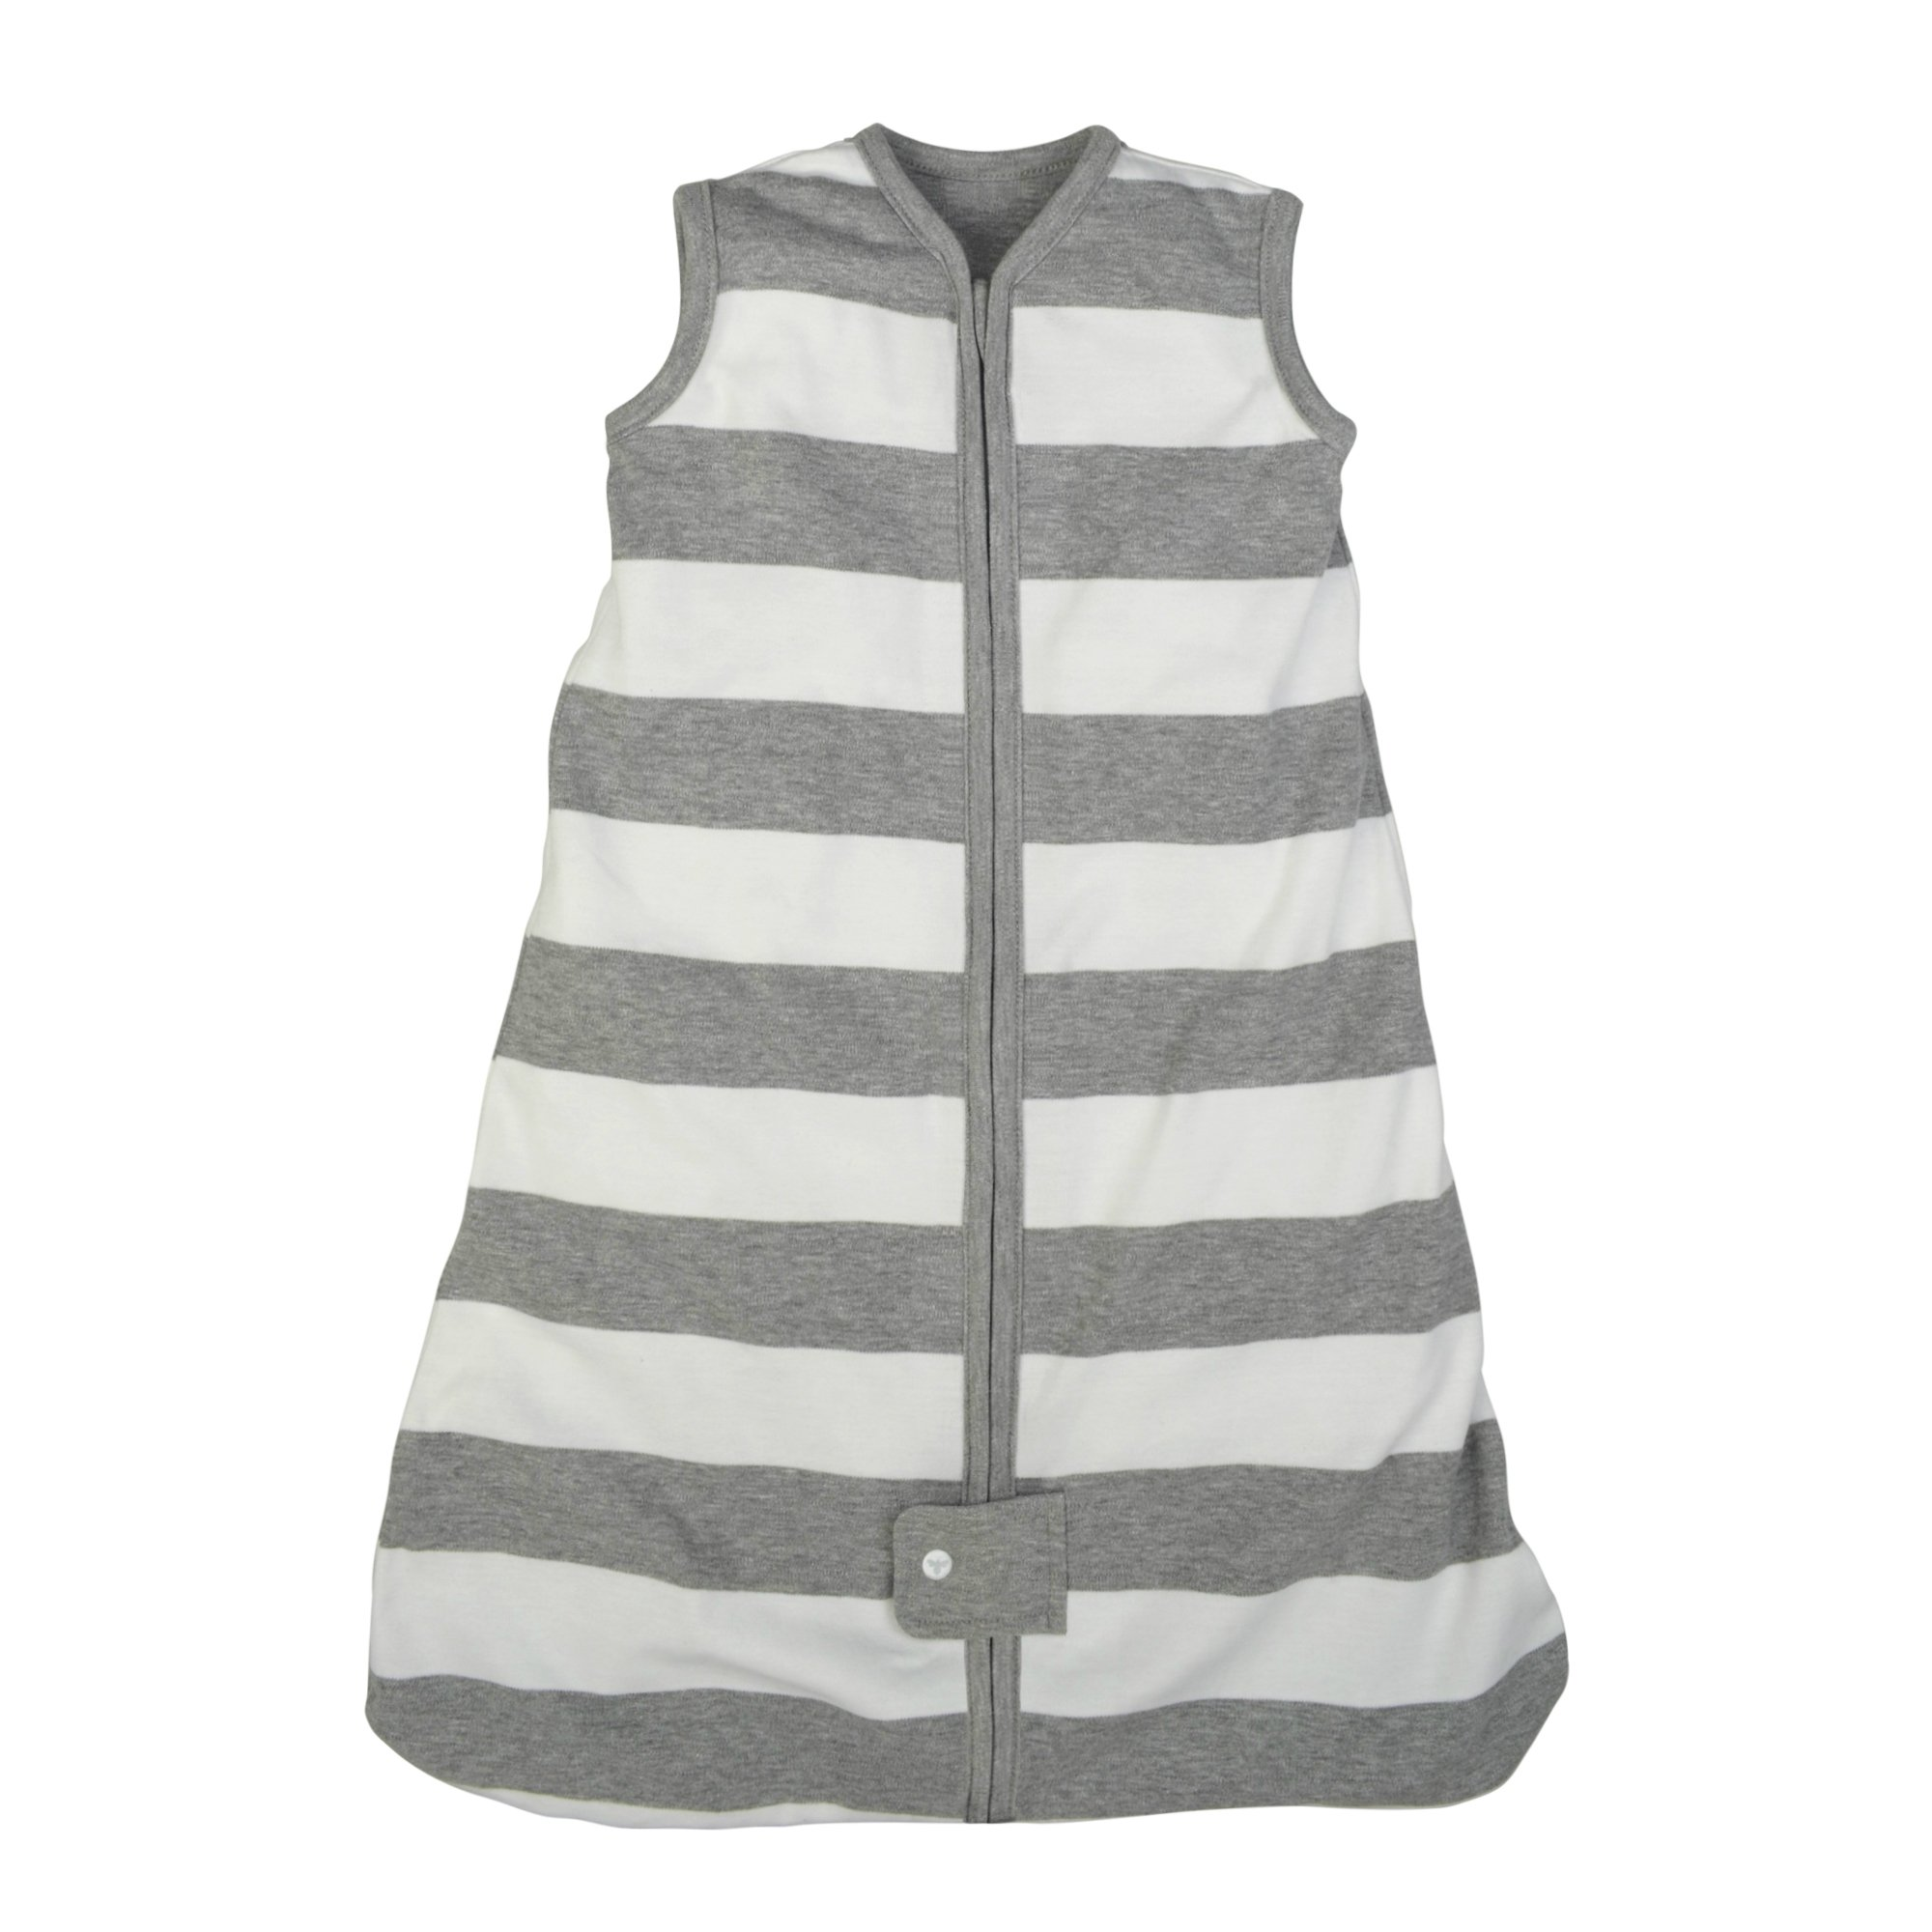 Burt's Bees Baby - Beekeeper Wearable Blanket, 100% Organic Cotton, Rugby Stripe Heather Grey (Large) by Burt's Bees Baby